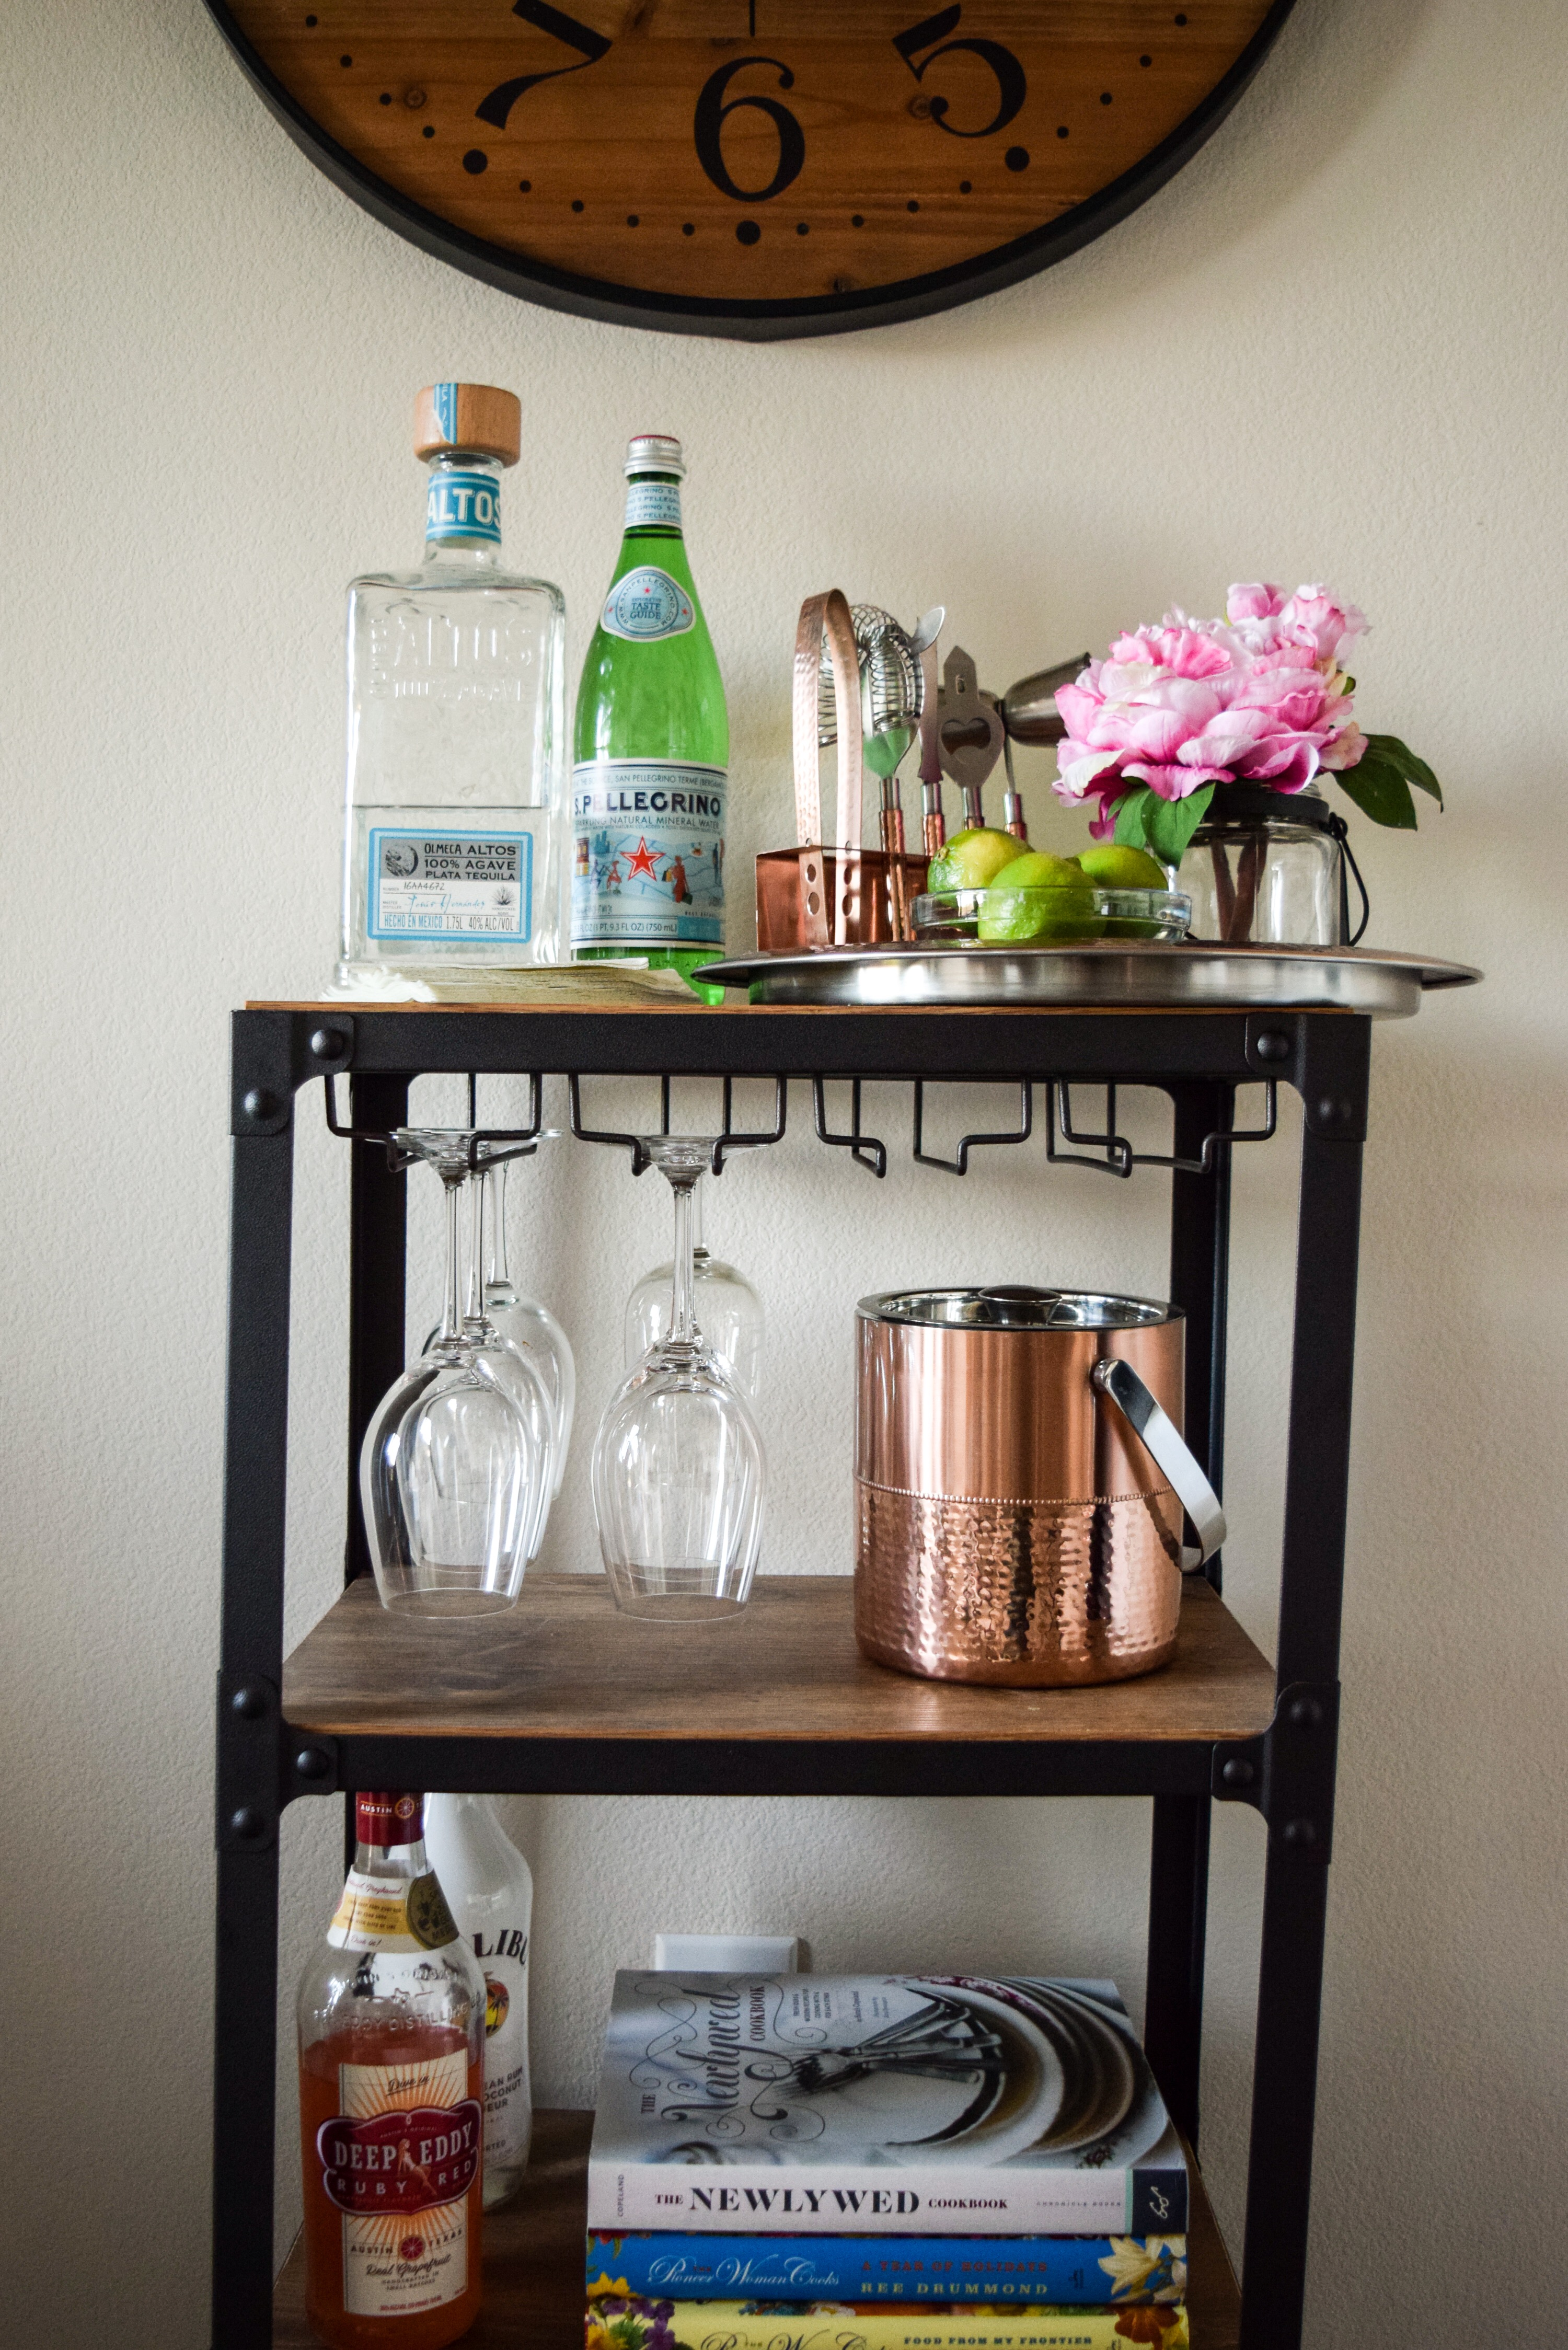 How To Style A Bar Cart (On A Budget!)